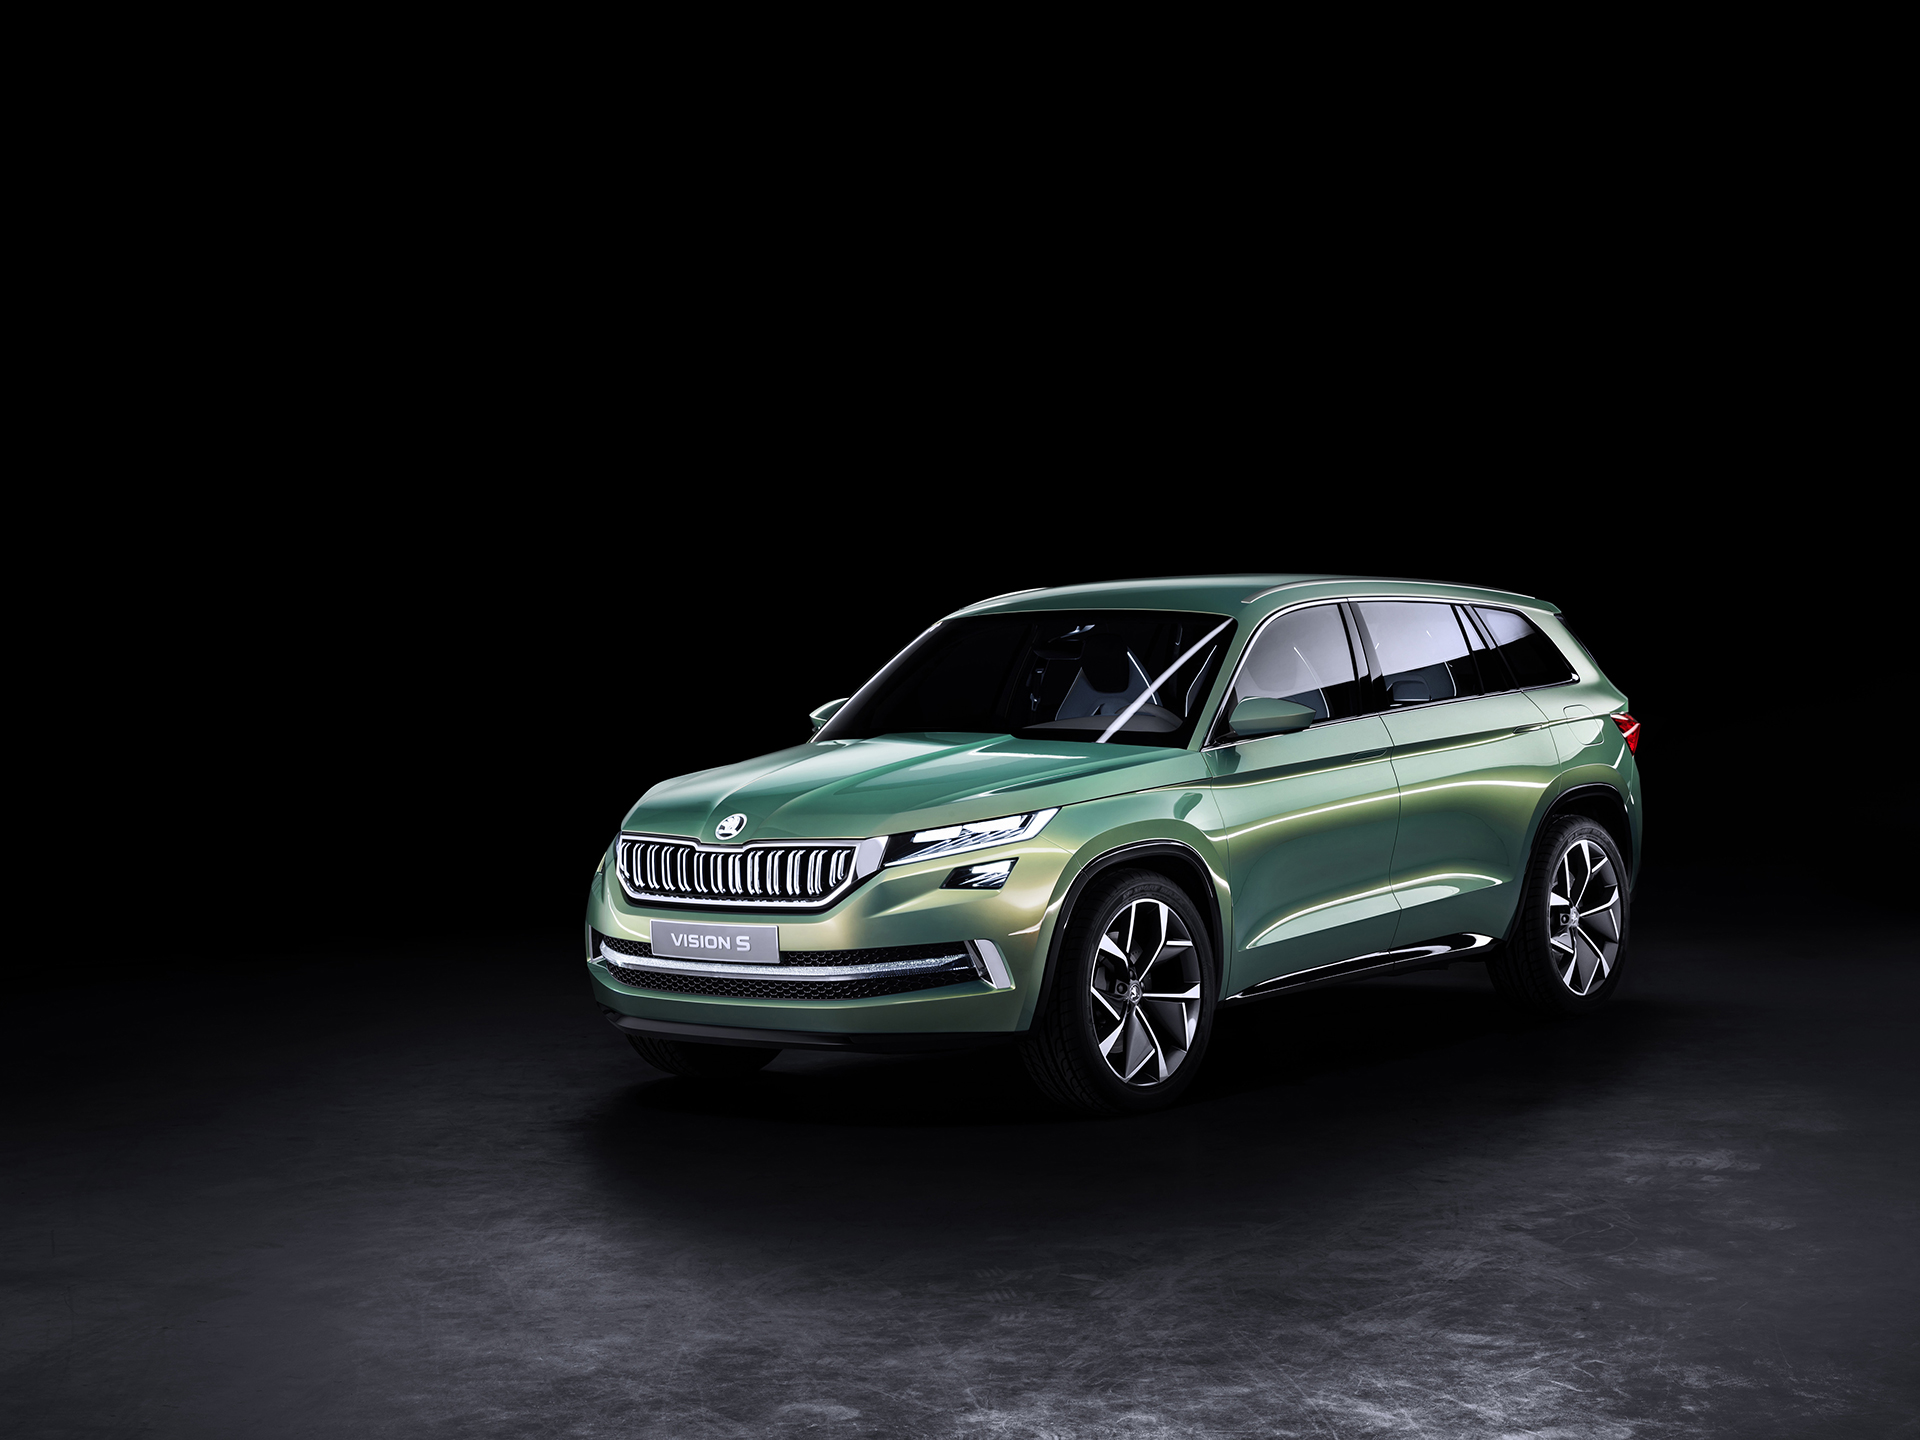 Skoda VisionS Concept - 2016 - front-side-face / profil avant